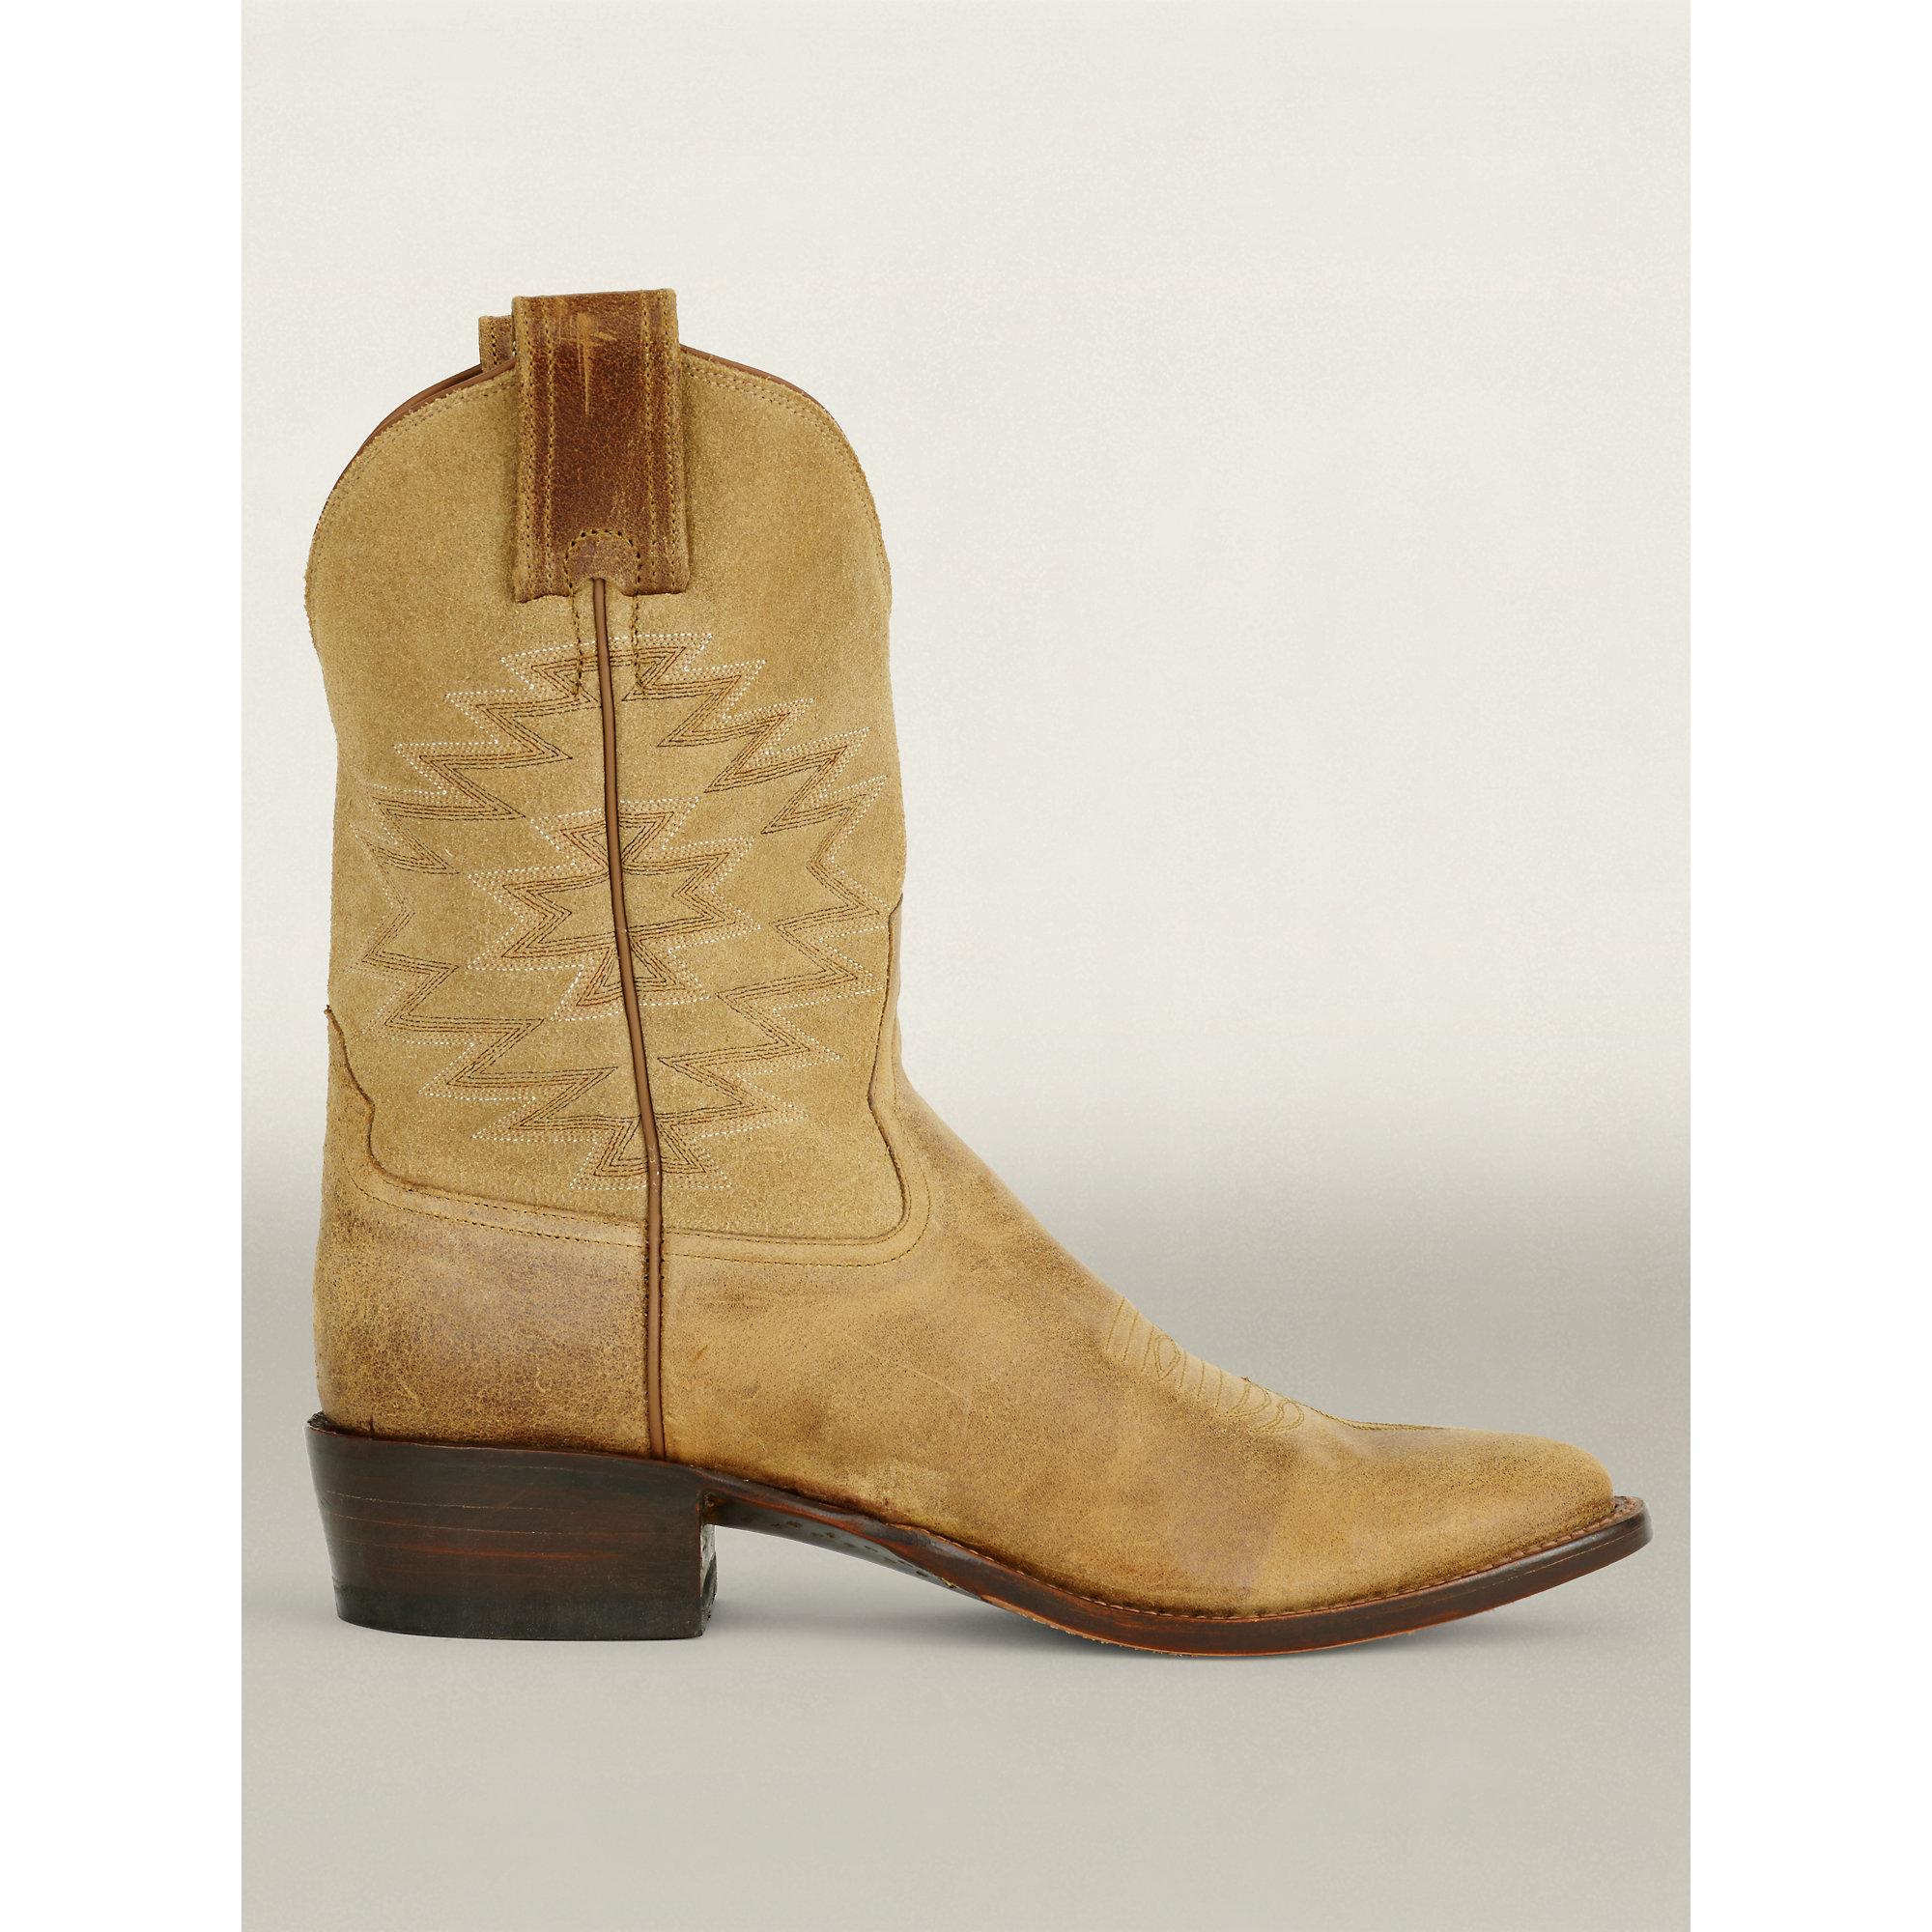 Ralph lauren Leather Plainview Cowboy Boot in Natural   Lyst